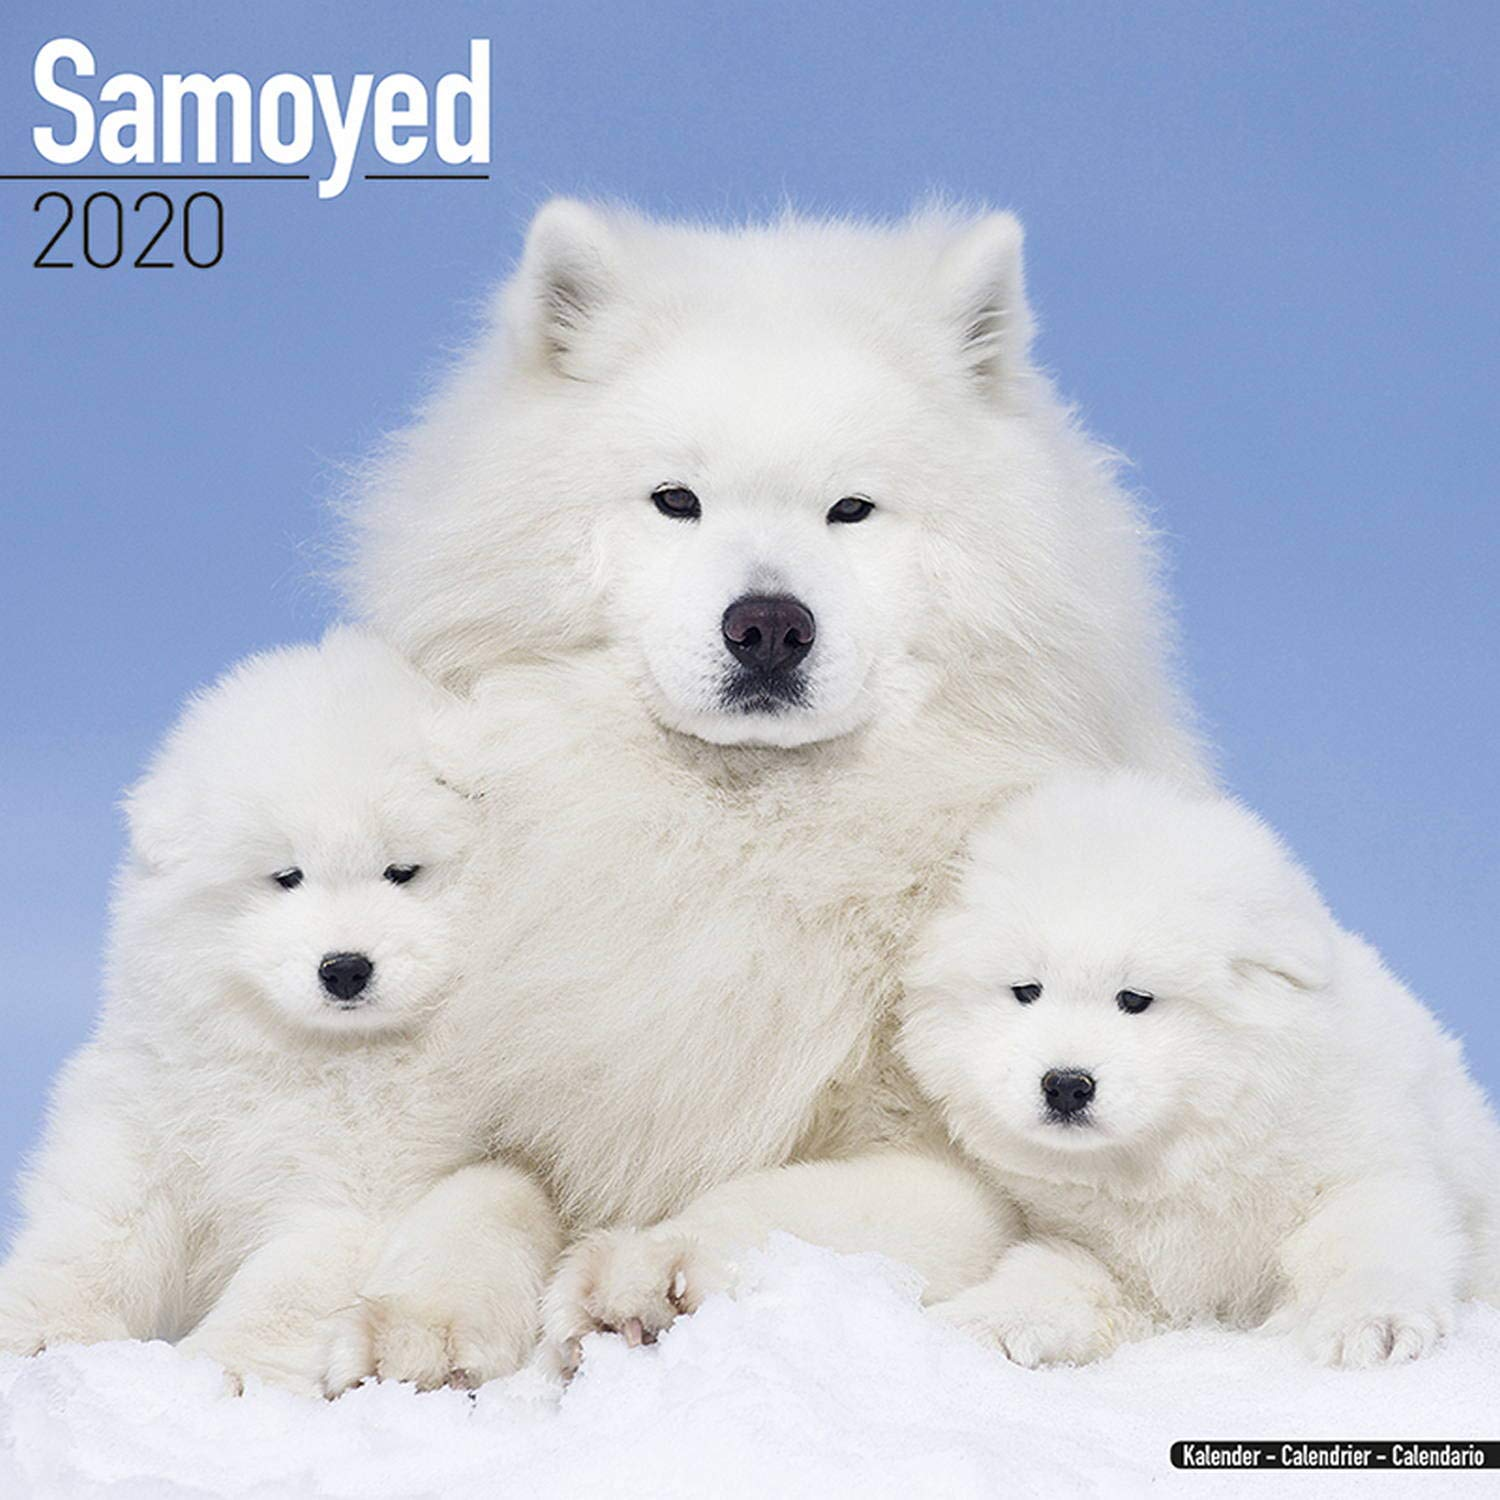 Wrc 2020 Calendario.Samoyed Calendar 2020 Amazon Co Uk Avonside Publishing Ltd